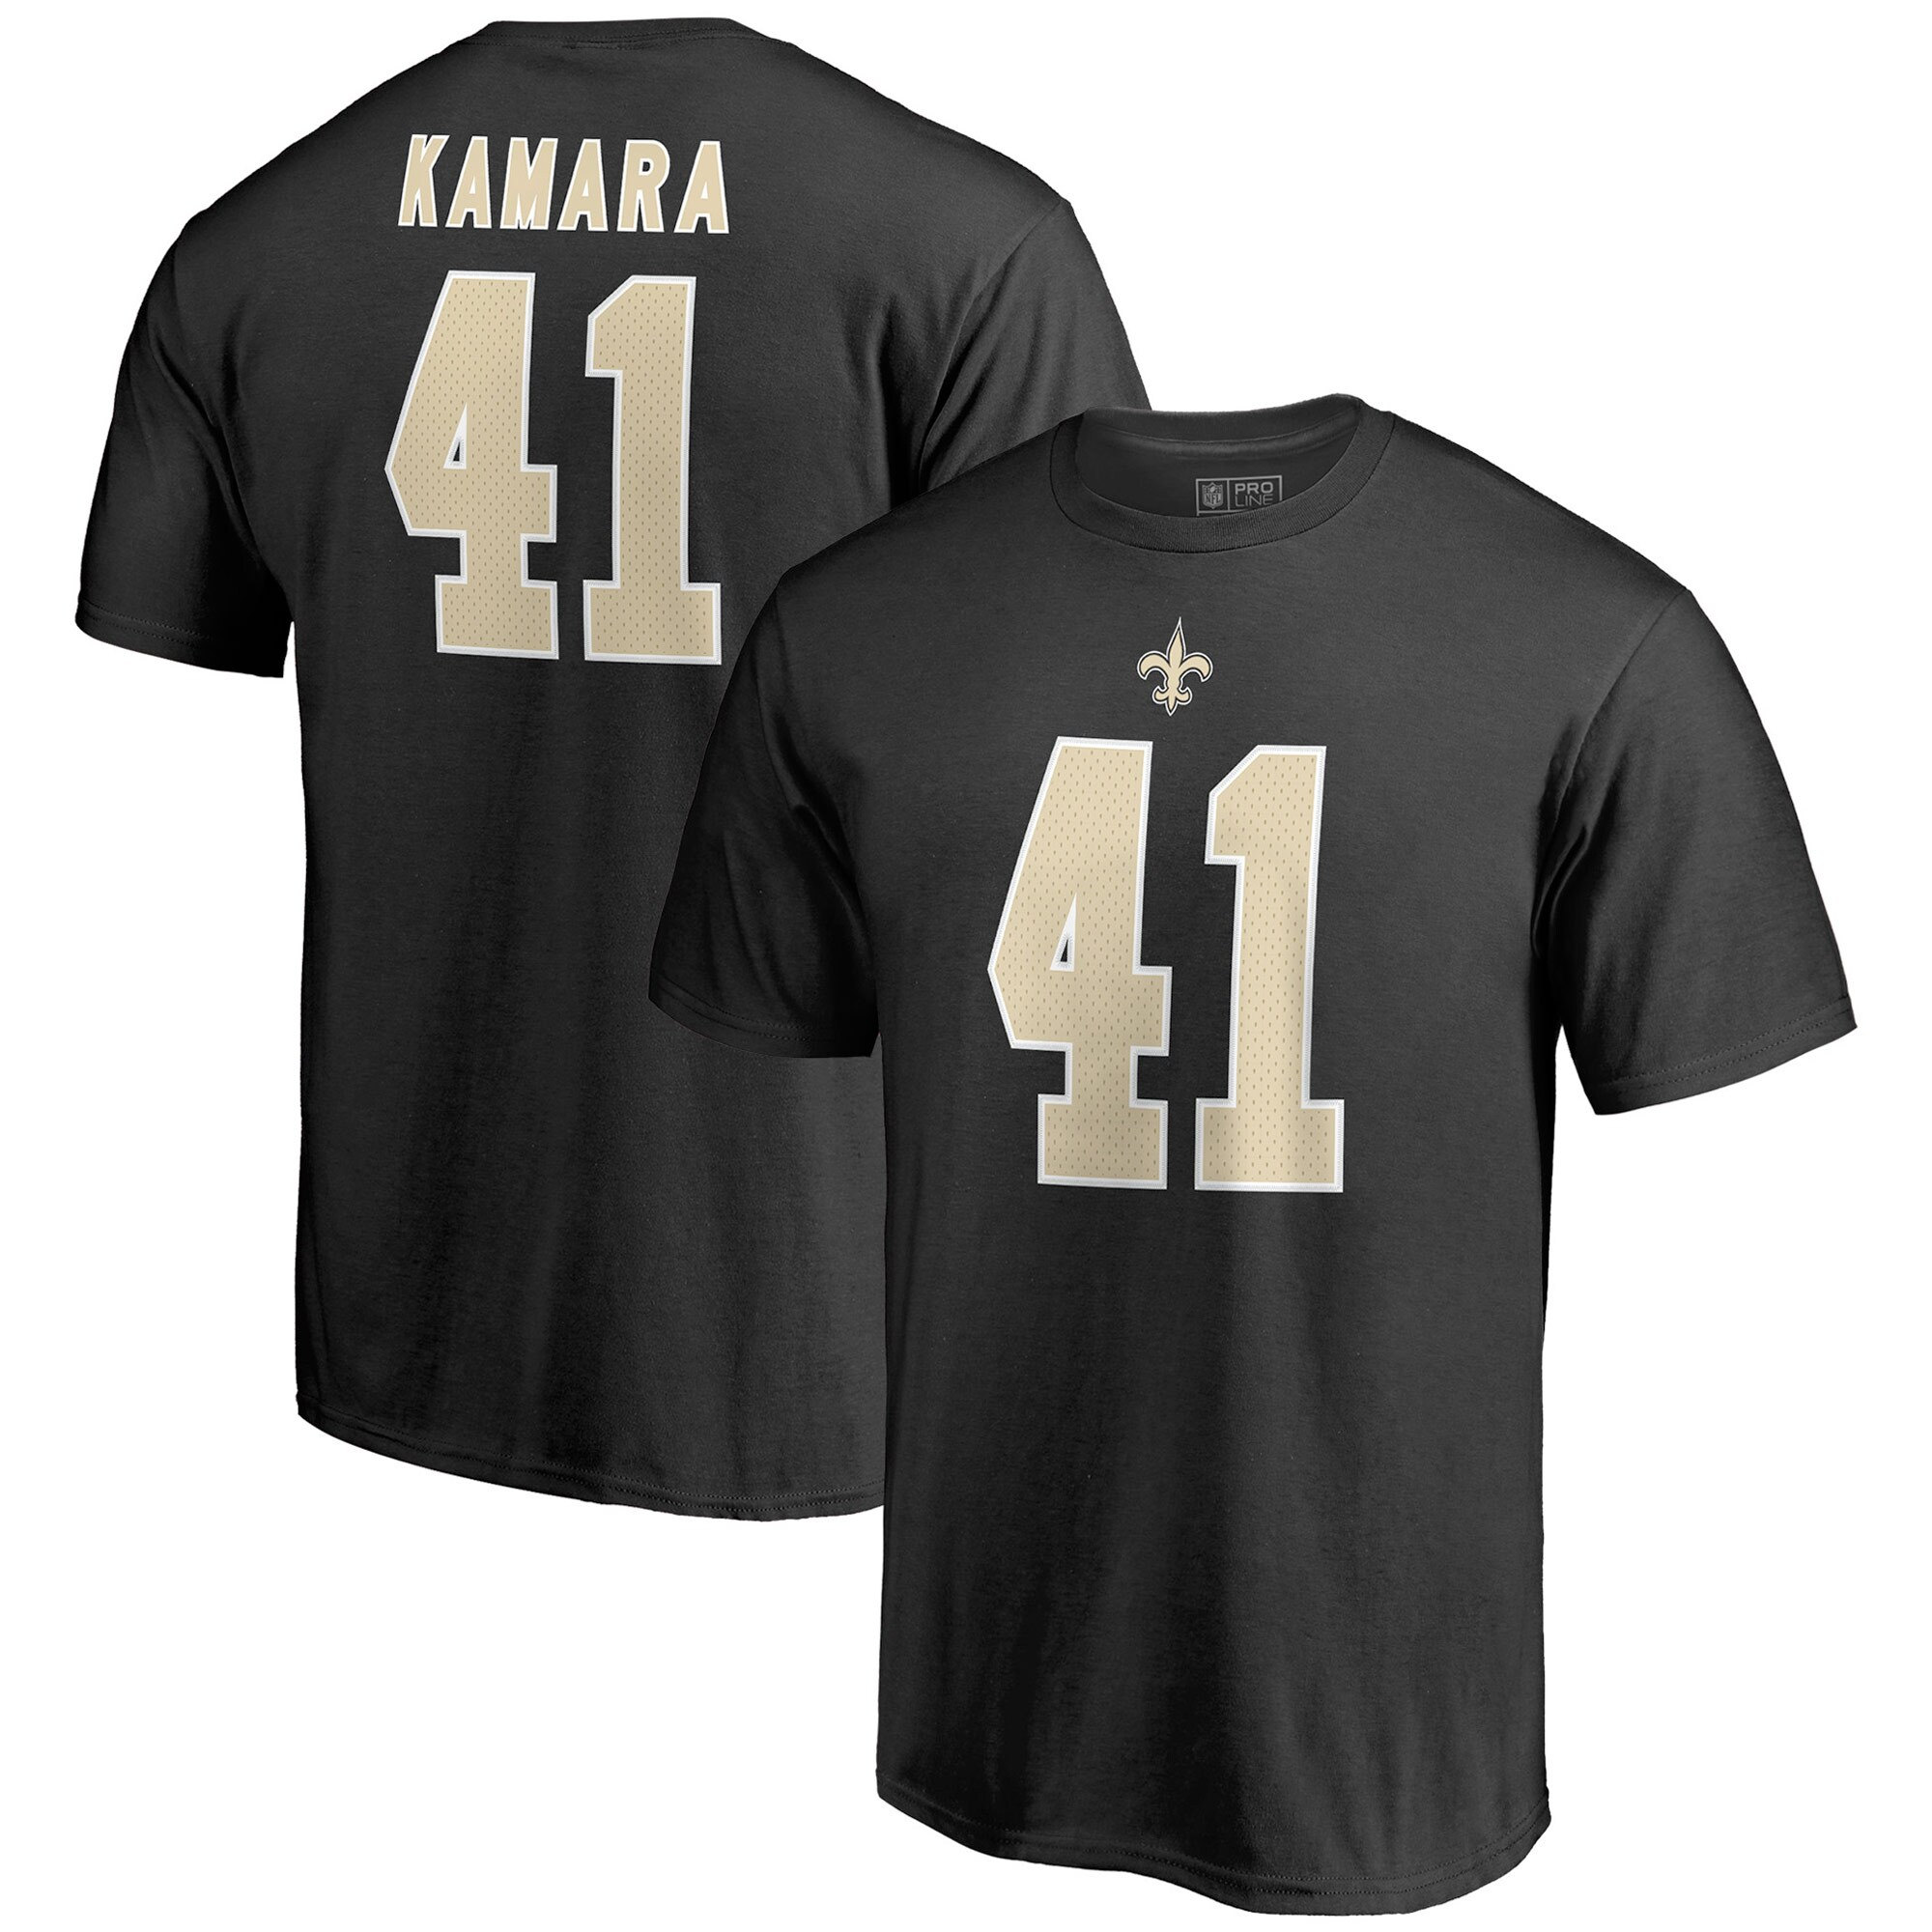 Alvin Kamara New Orleans Saints NFL Pro Line by Fanatics Branded Team Authentic Stack Name & Number T-Shirt - Black